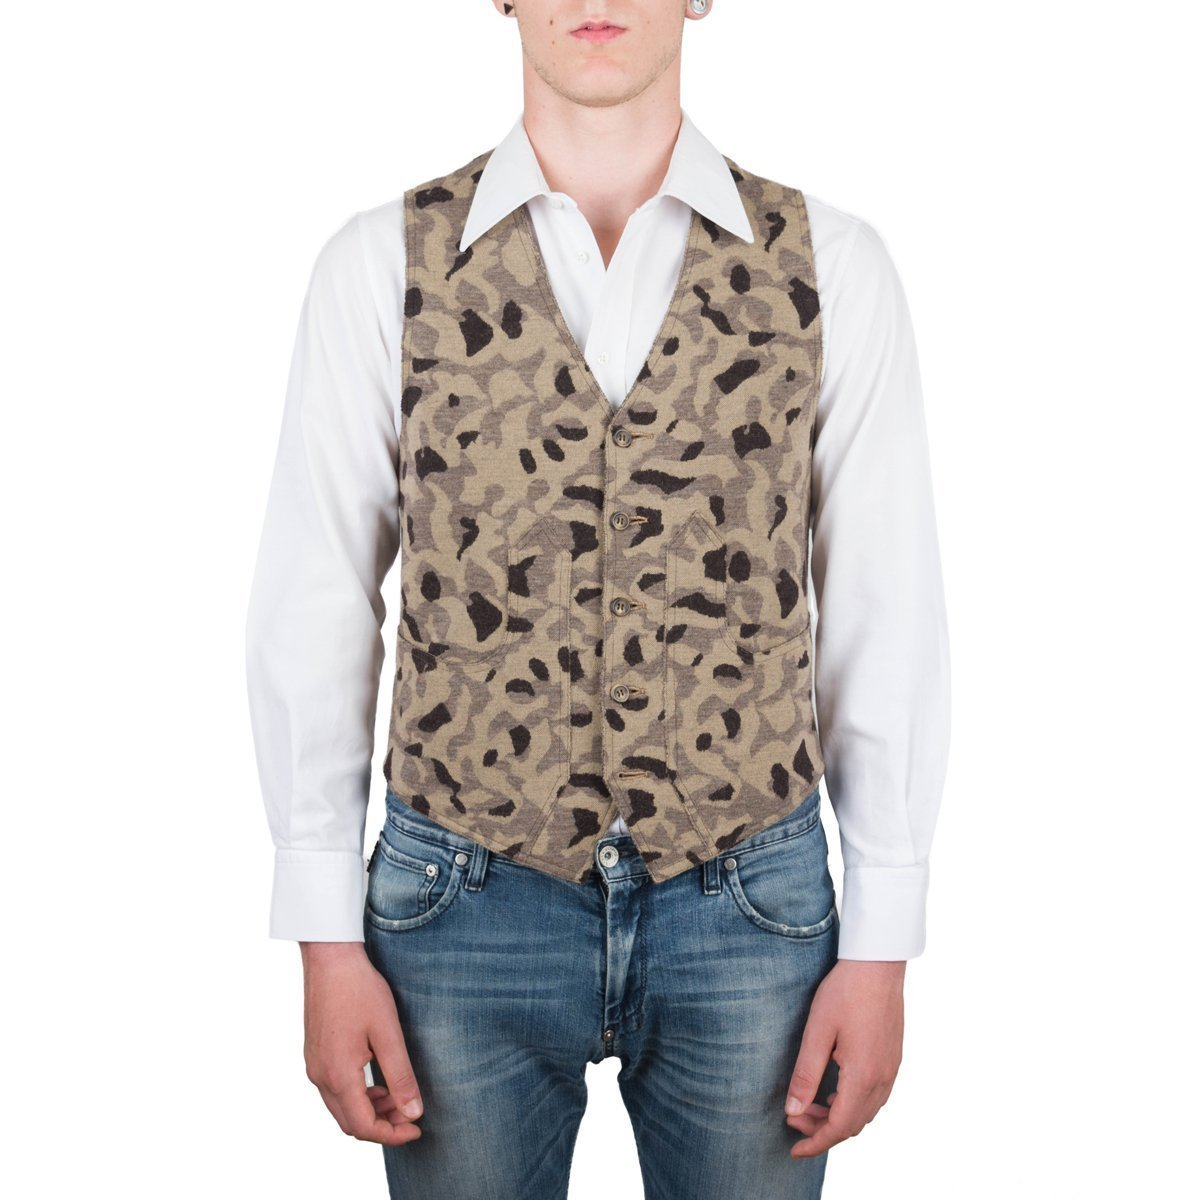 Vest, Gilet, Waistcoat, Knitwear, Men, Boy, Brown, Camel, Army, Camo, Camouflage, Wool, Buttons, Tuscan Hunter Pockets, Sporty, Sleeveless, Slimfit, Italian Style, Made in Italy, Handmade